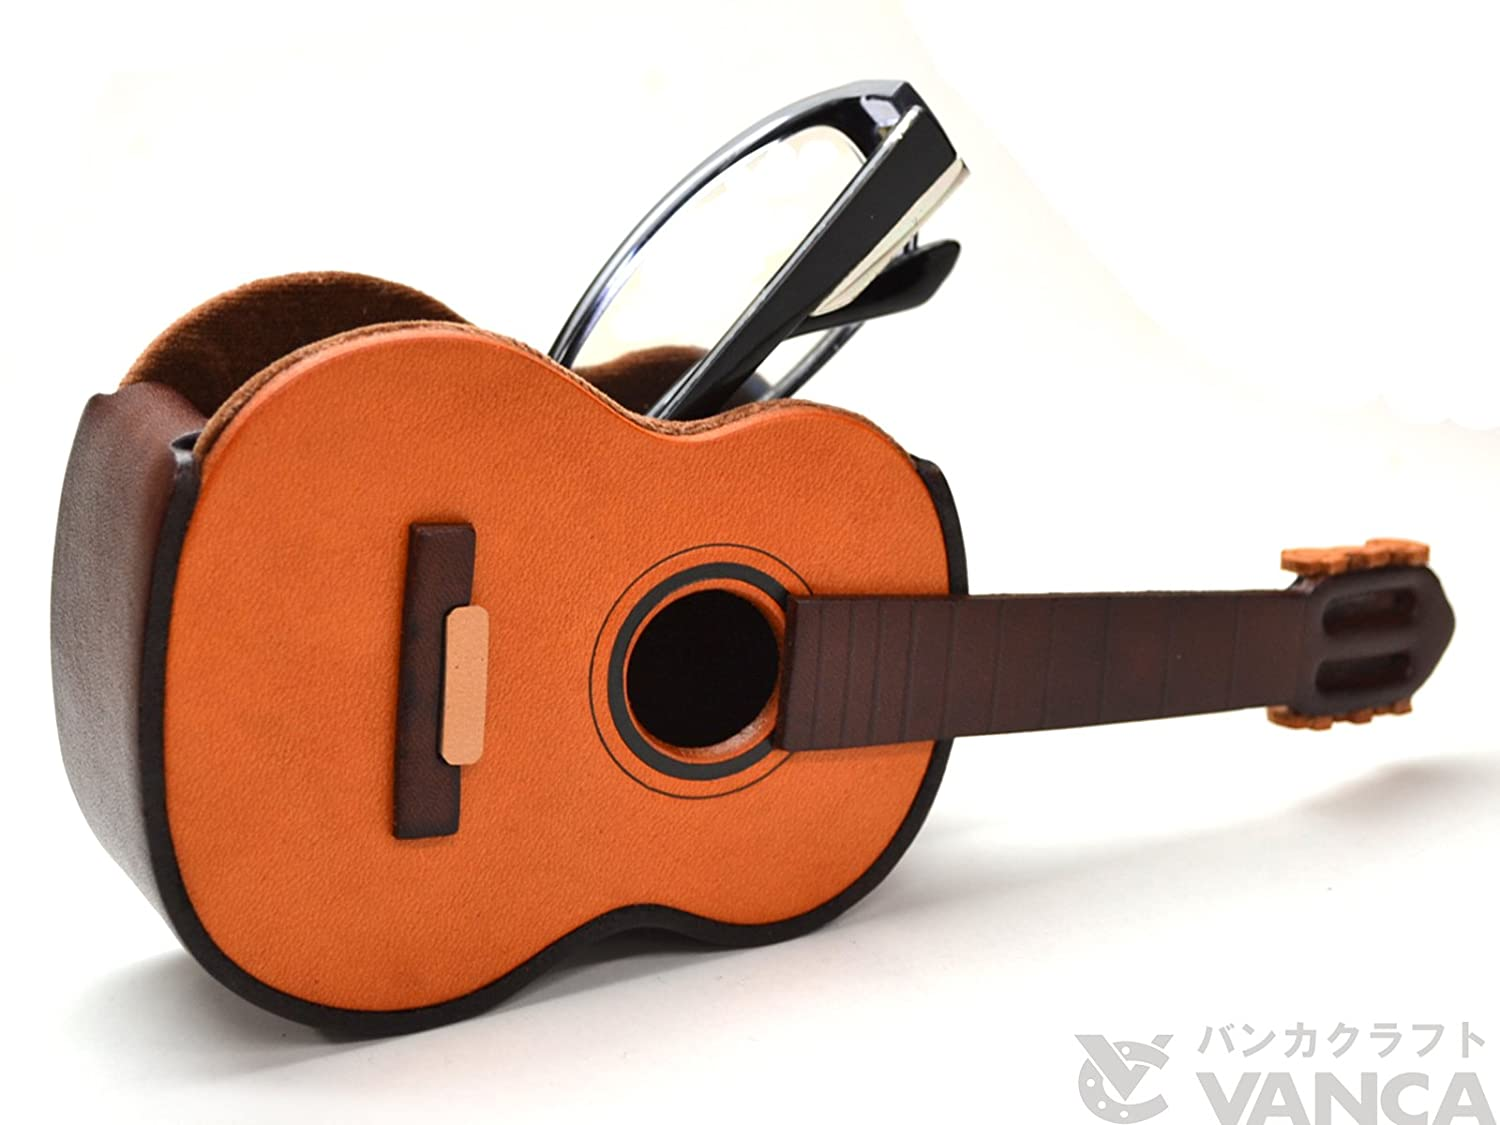 Guitar shaped eyeglasses holder/ desk organizer